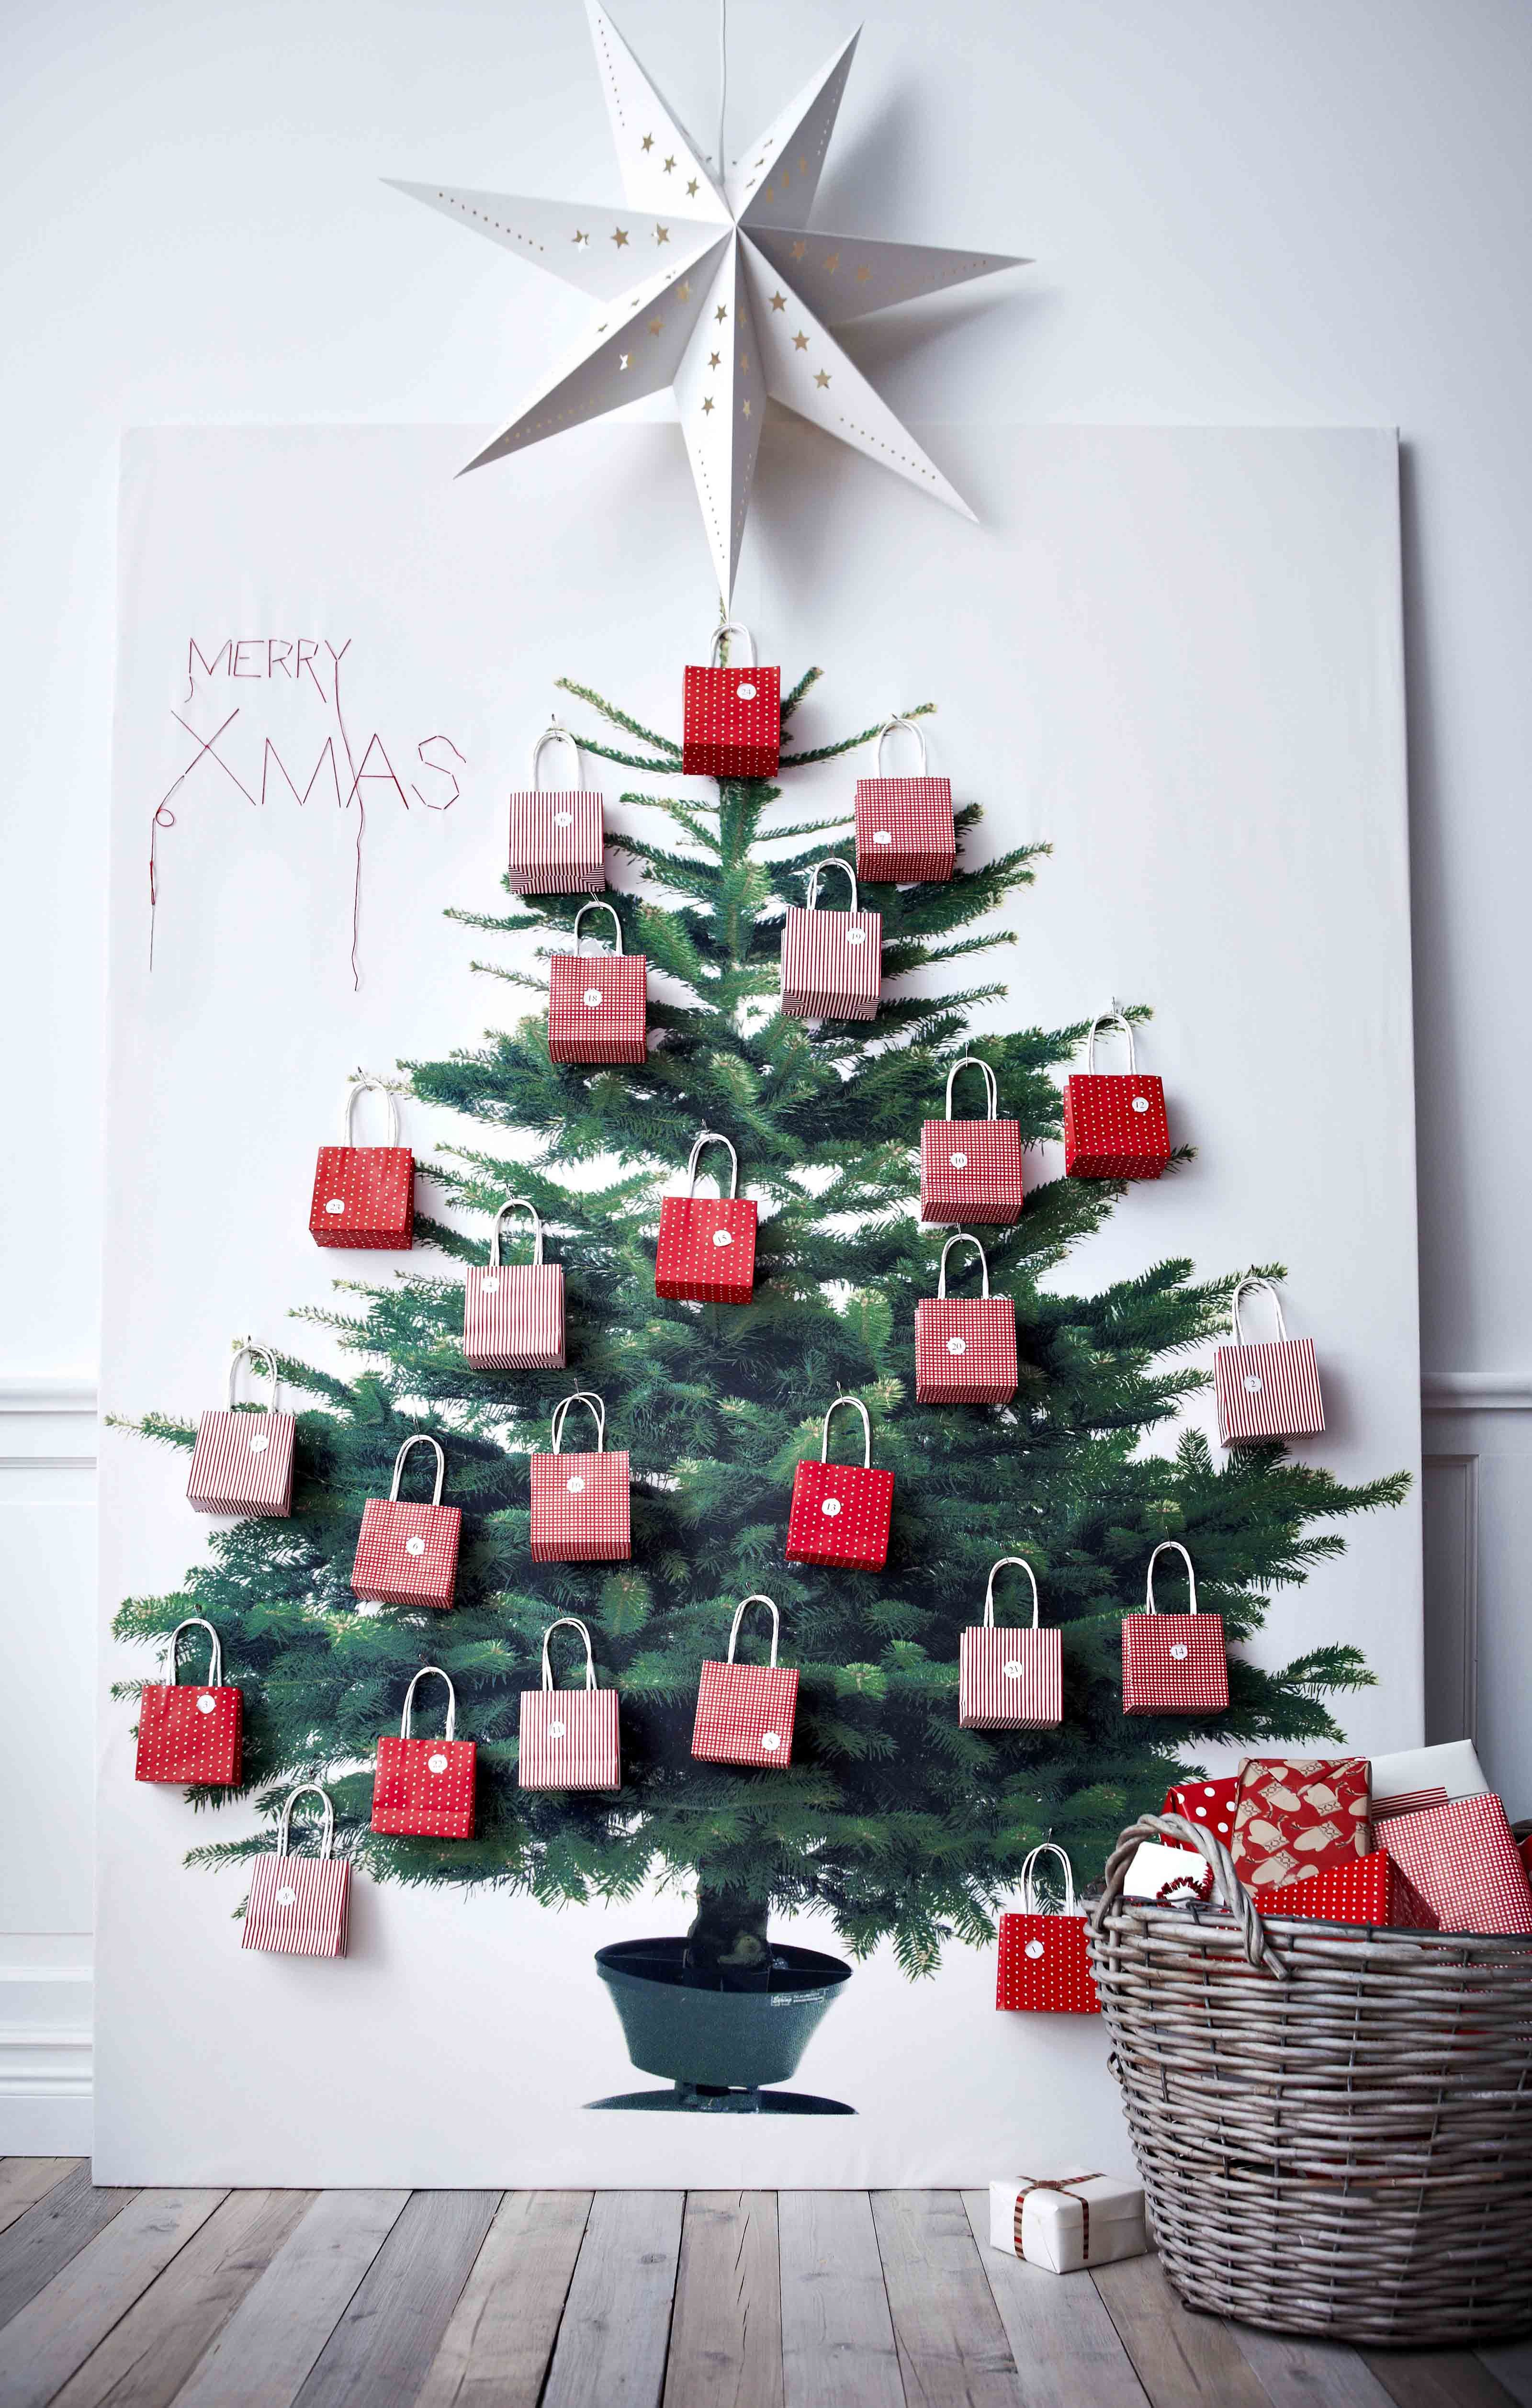 Christmas Giving Tree Ideas.Christmas Tree Good Way To Display A Giving Tree For Our